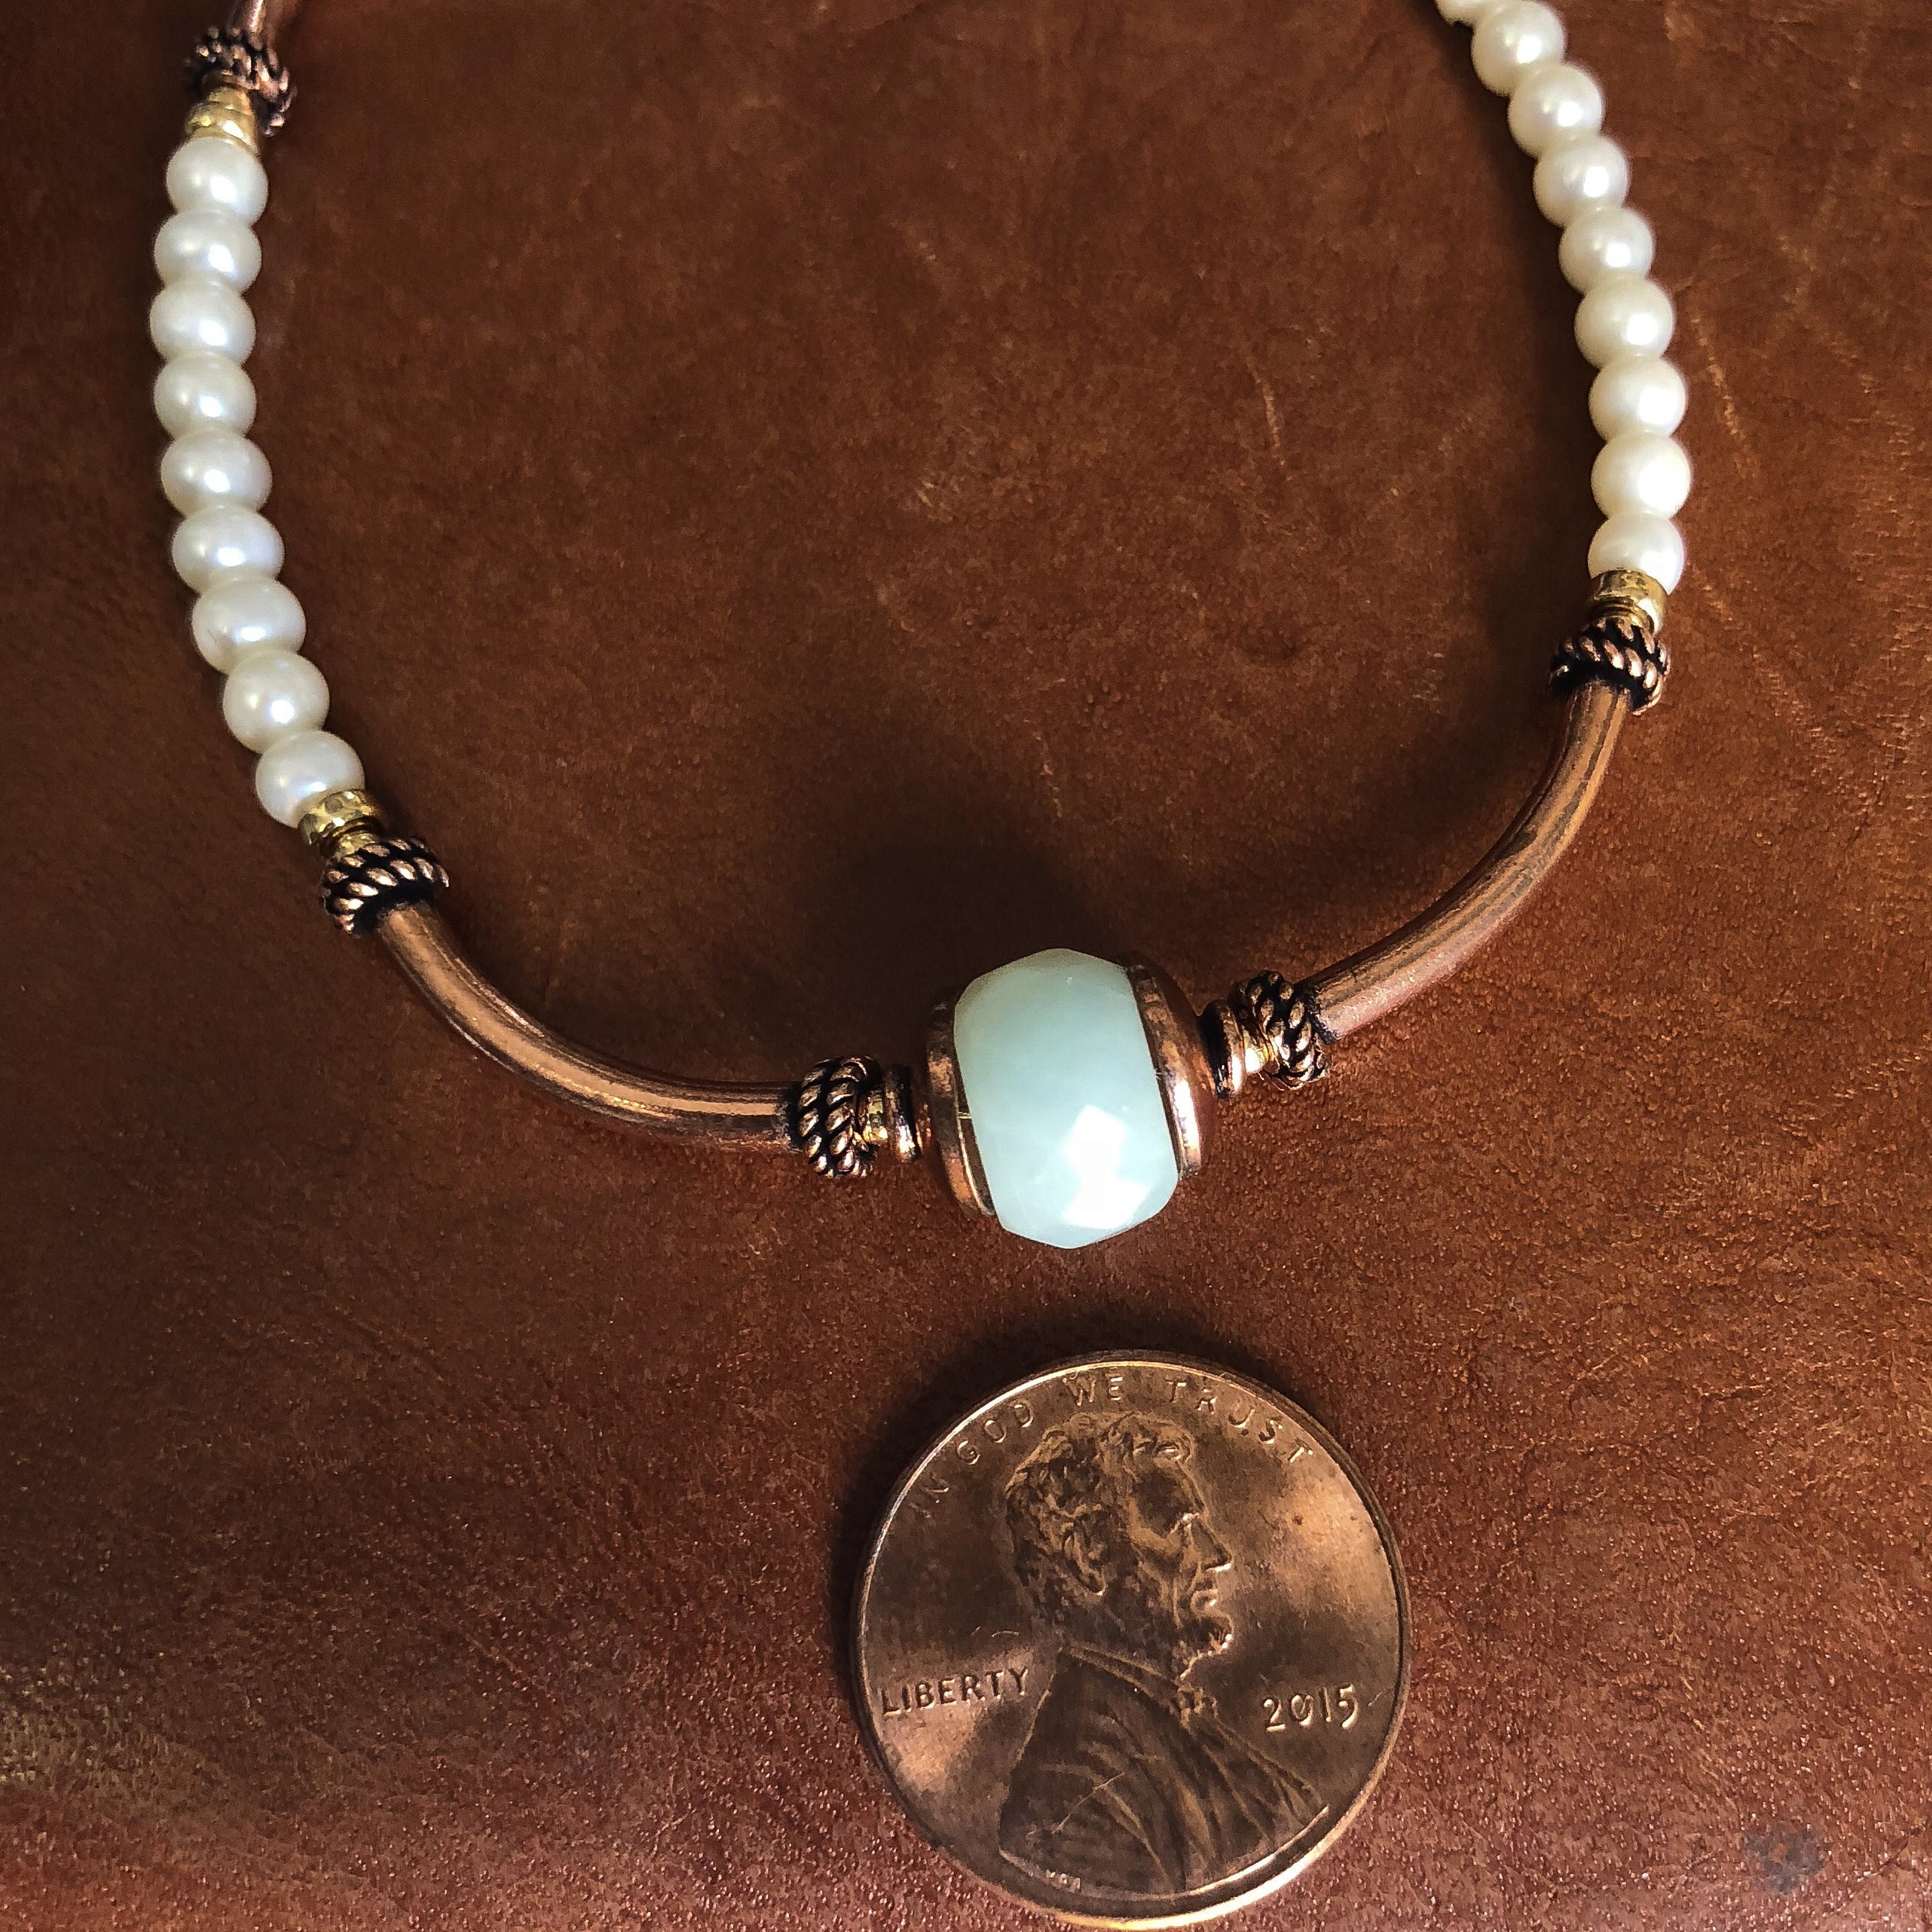 7 Year Anniversary Gifts For Women Copper Jewelry Bracelet White Pearls Blue Stone